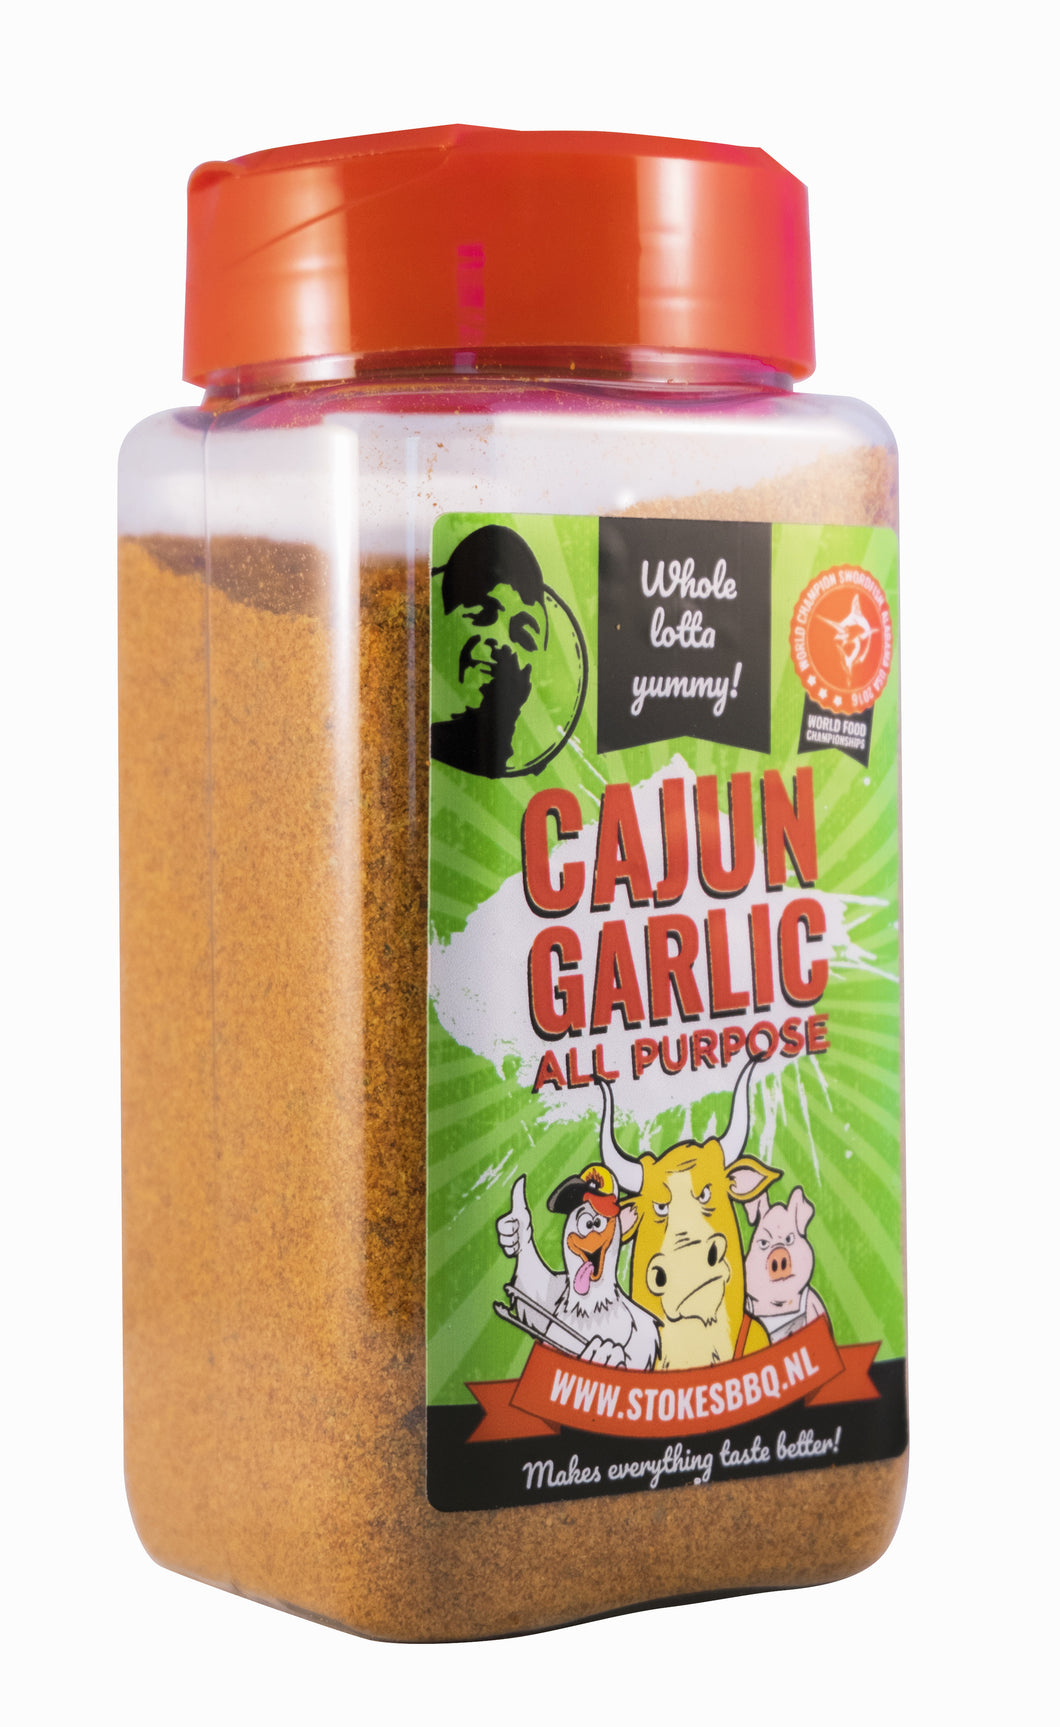 Cajun garlic. Makes everything taste better!